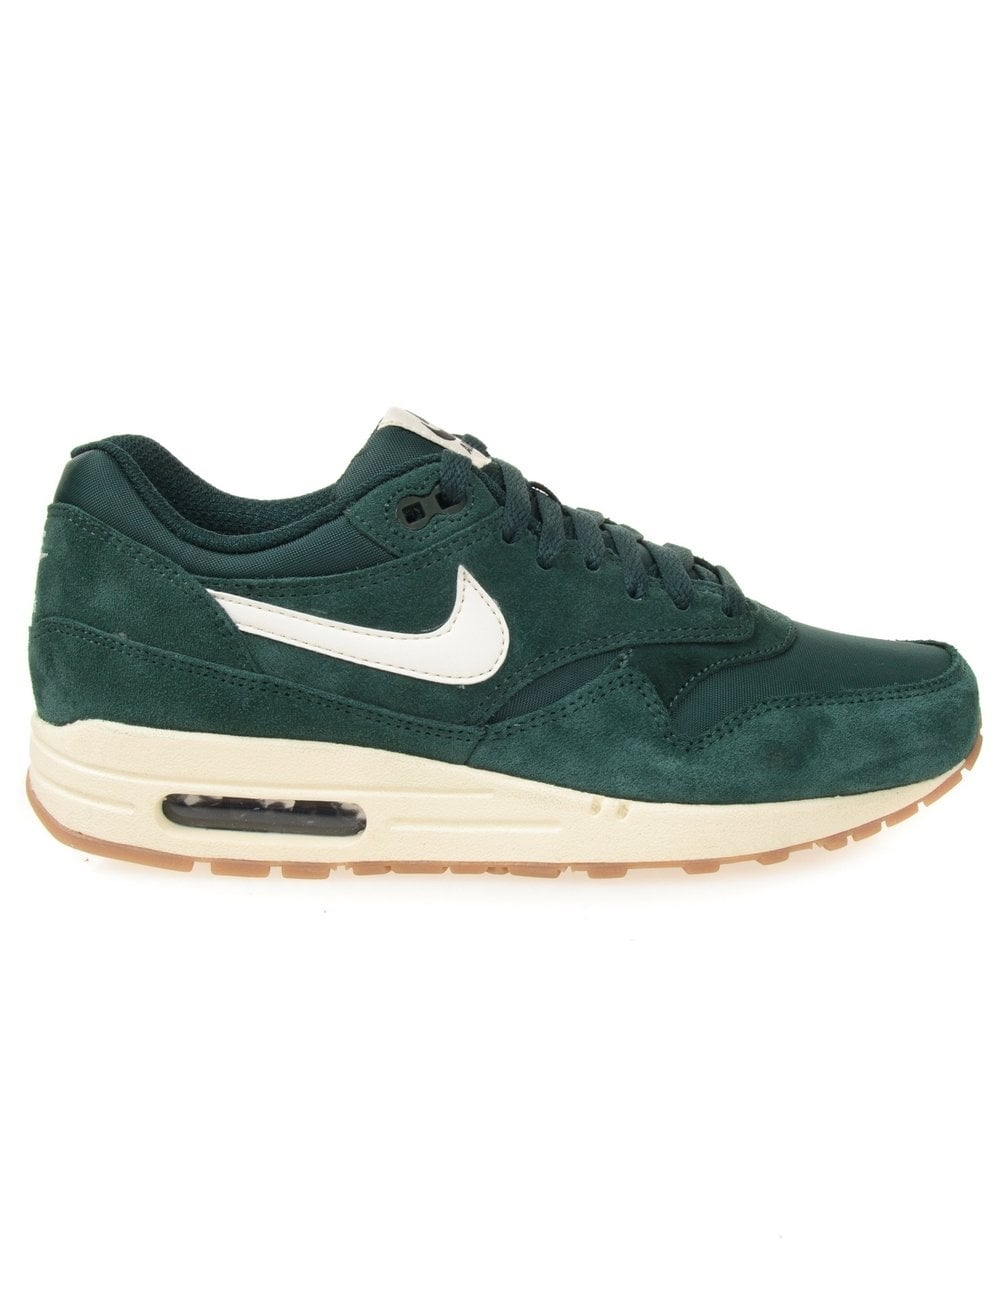 Nike Air Max 1 Essential Green